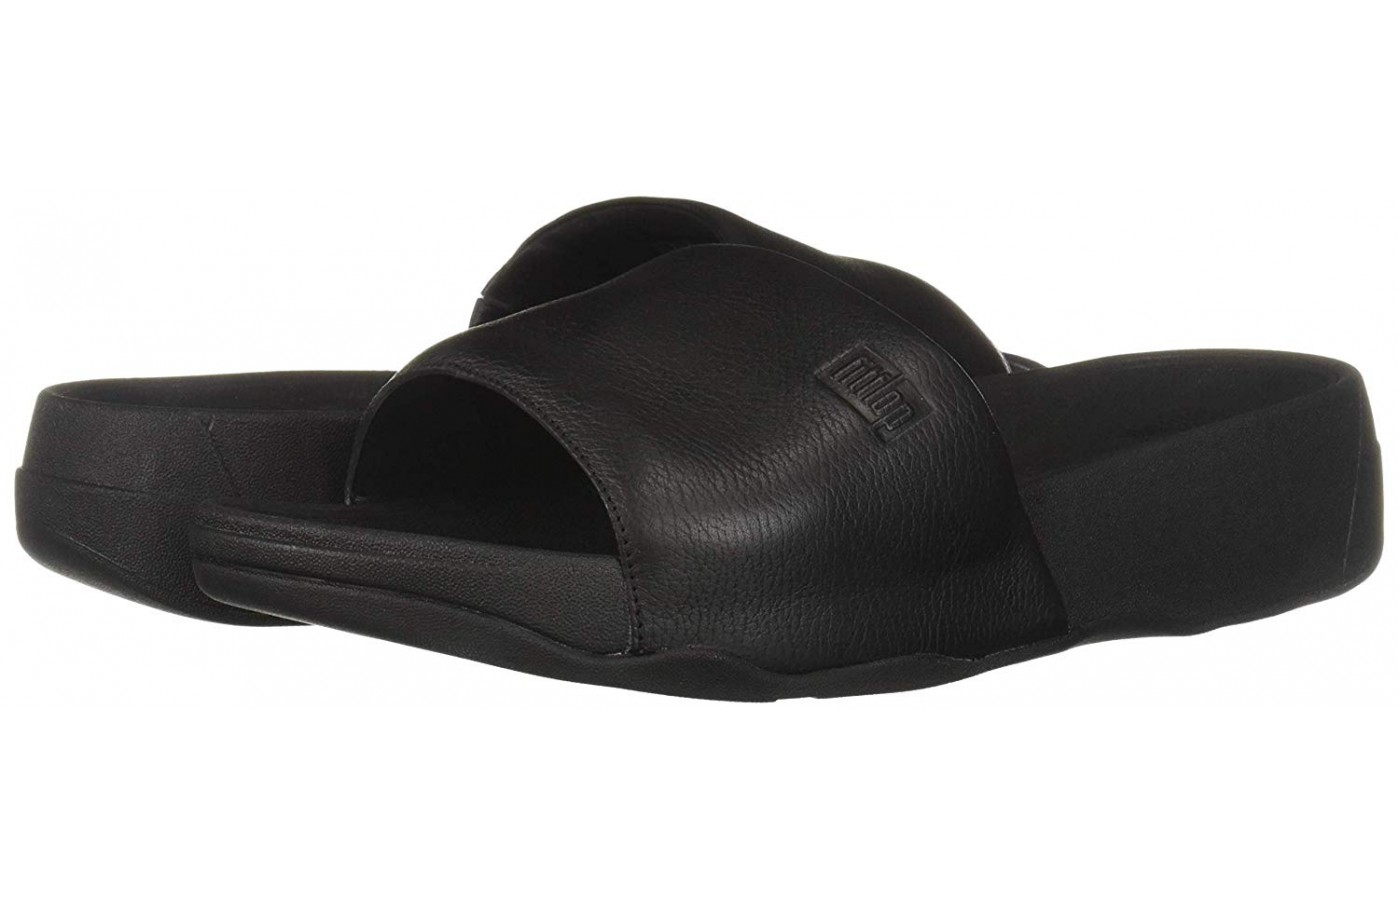 A low-profile pair of the FitFlop Kano.